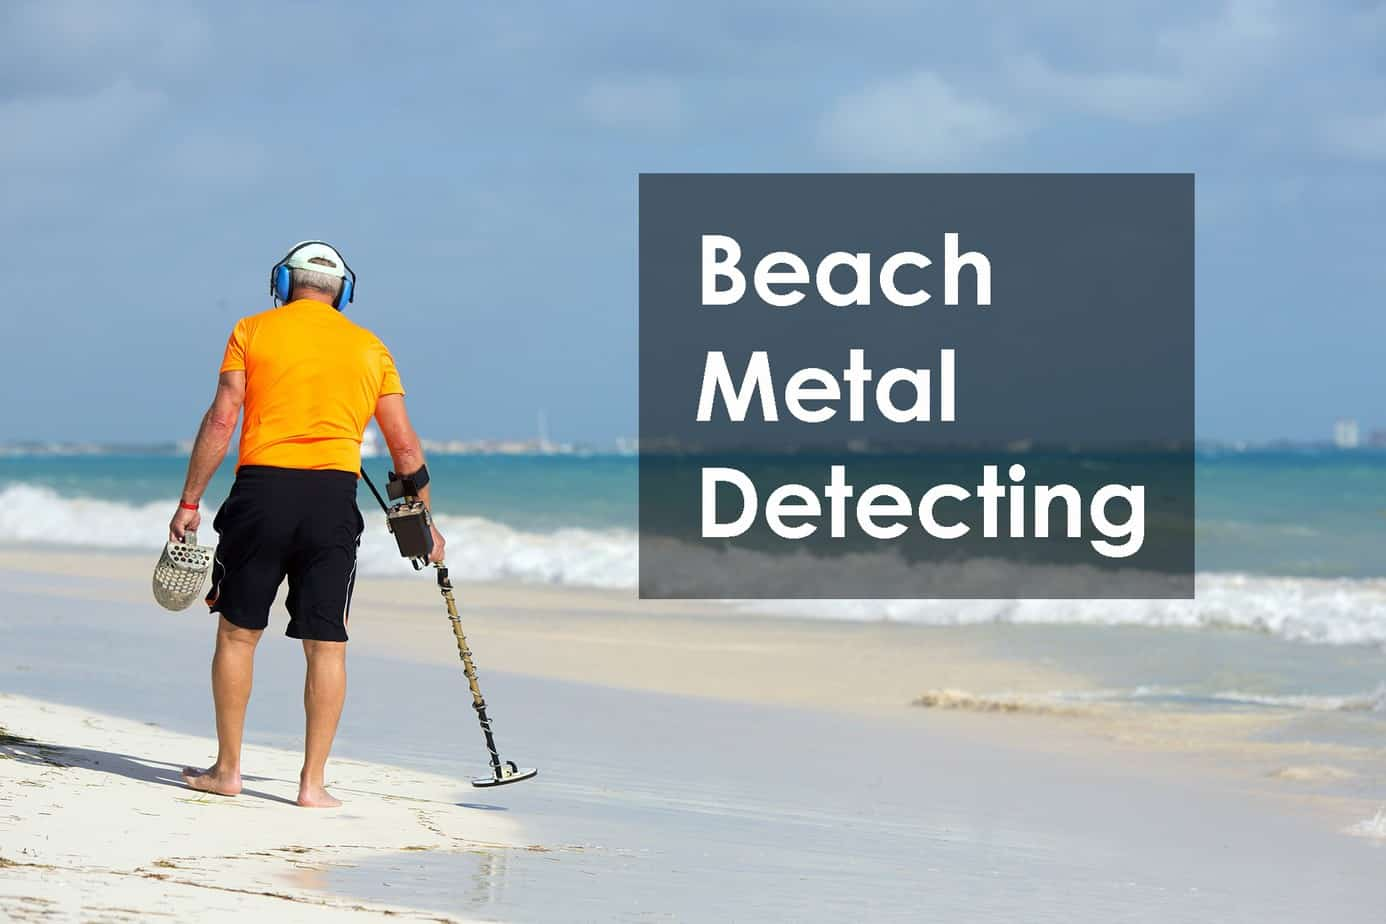 man in yellow shirt on the beach metal detecting